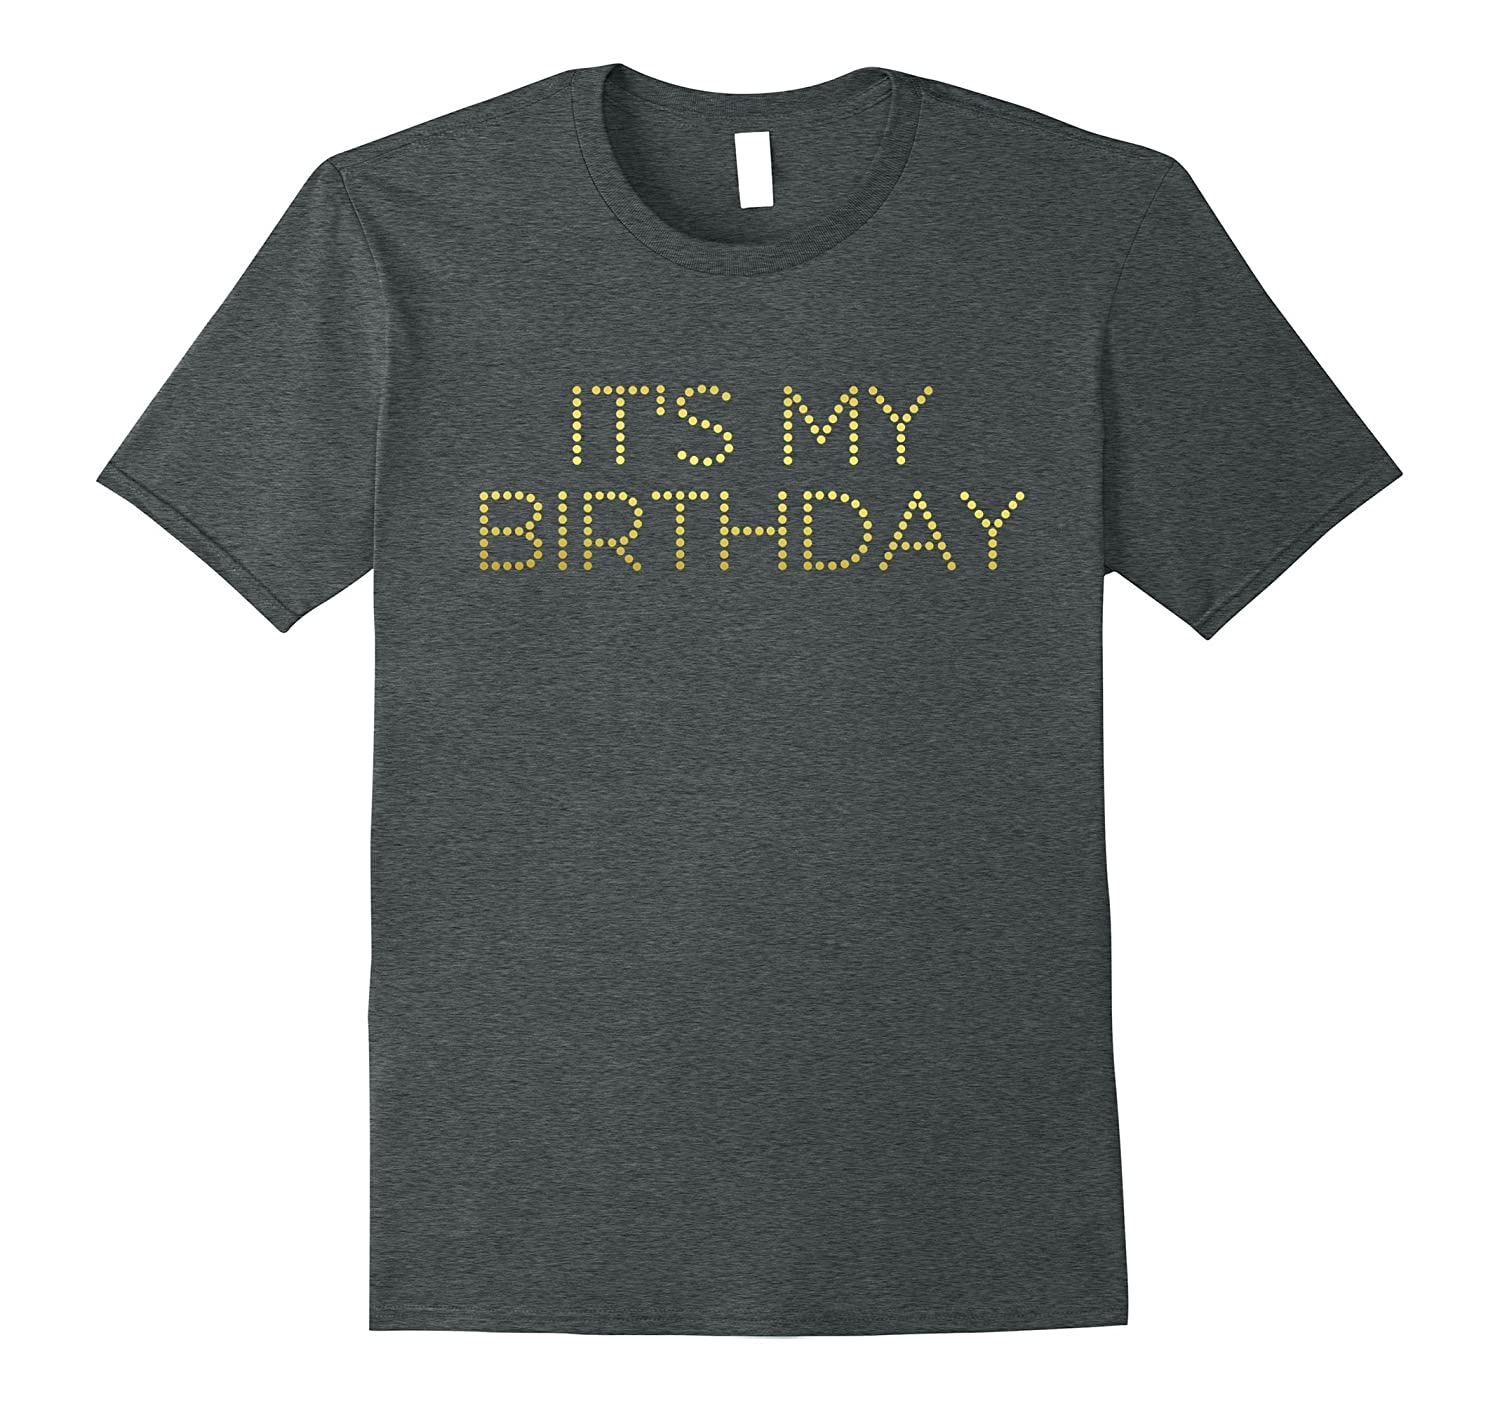 Its My Birthday Shirt For Women